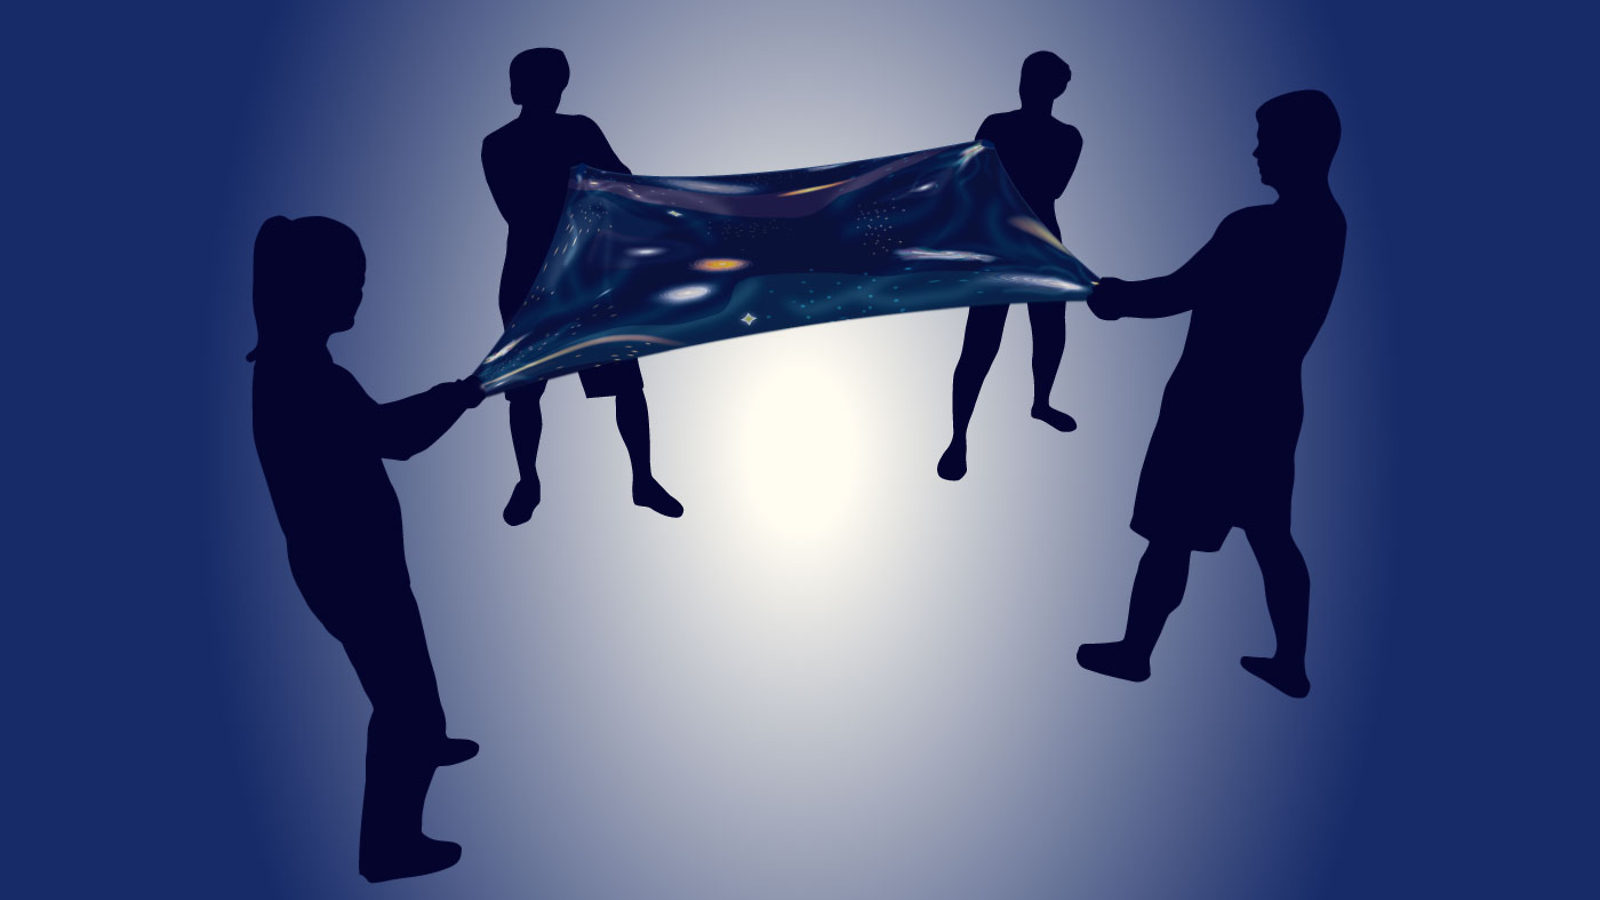 Illustration of four people holding four corner of a dark energy blanket